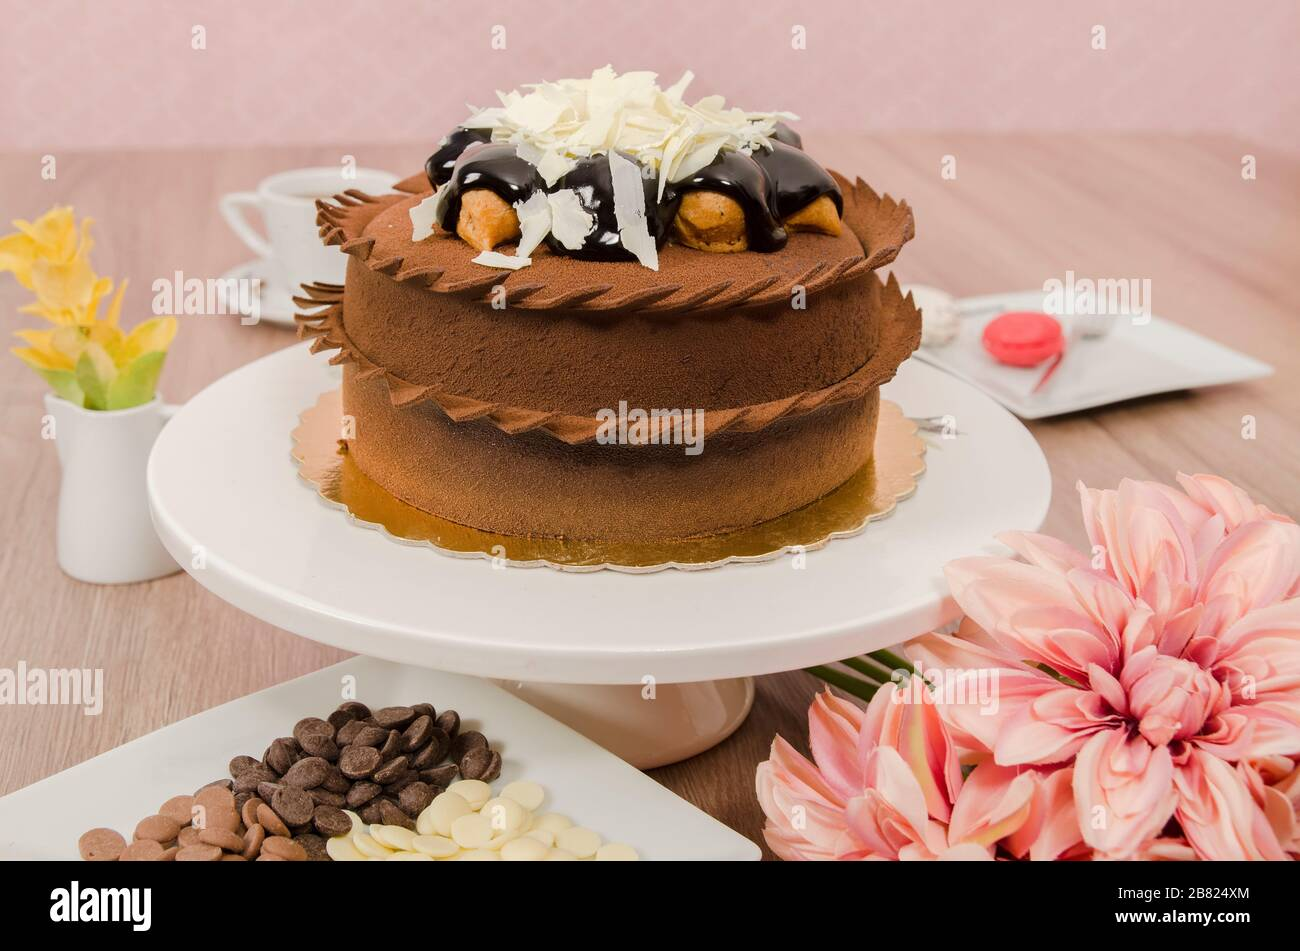 Page 15   Berlin Cake High Resolution Stock Photography and Images ...